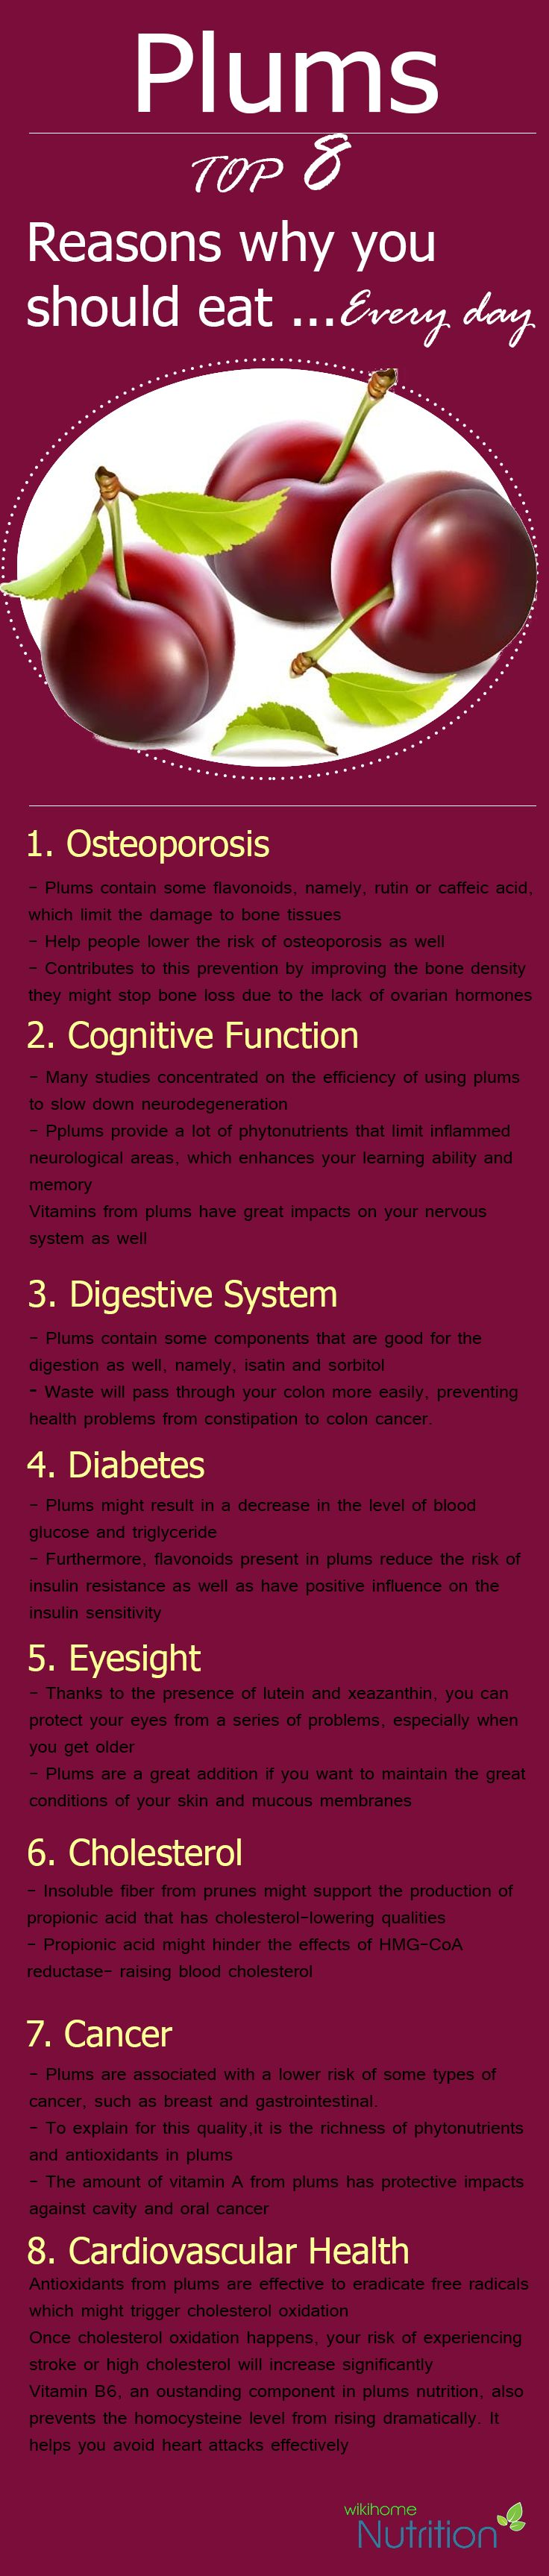 Health benefits of Plums: top 8 reasons why you should eat plums everyday